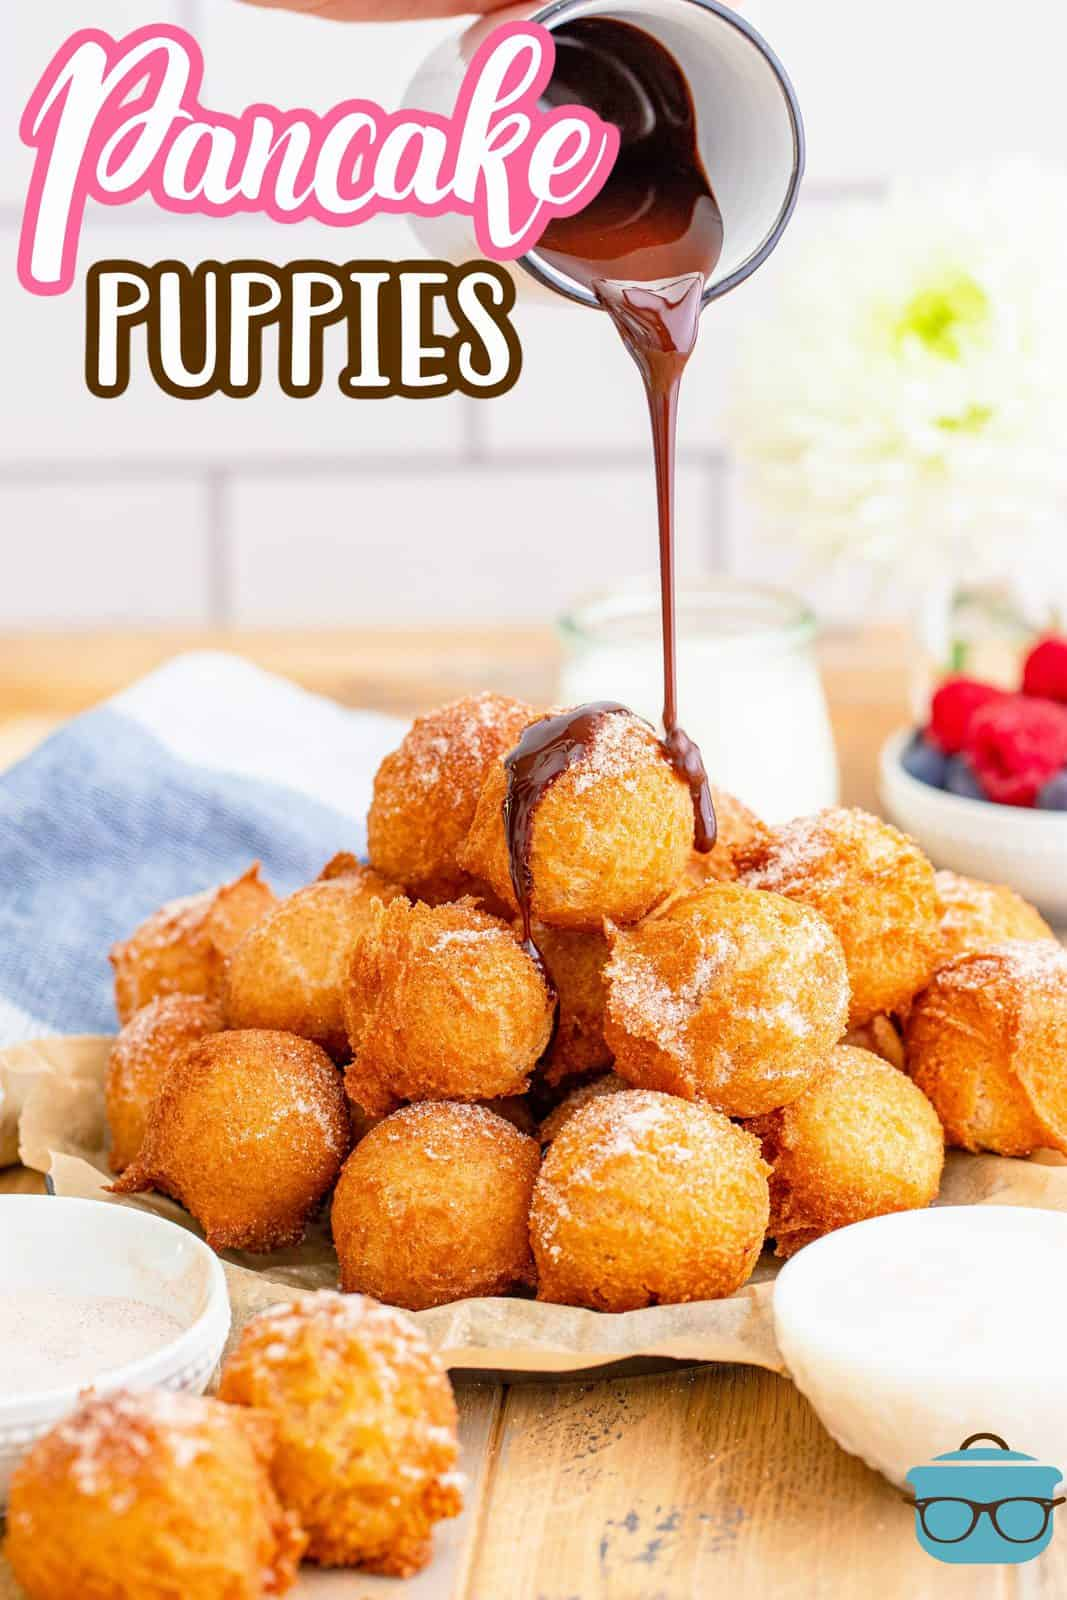 pancake puppies shown stacked on a plate with chocolate sauce being drizzled on top.